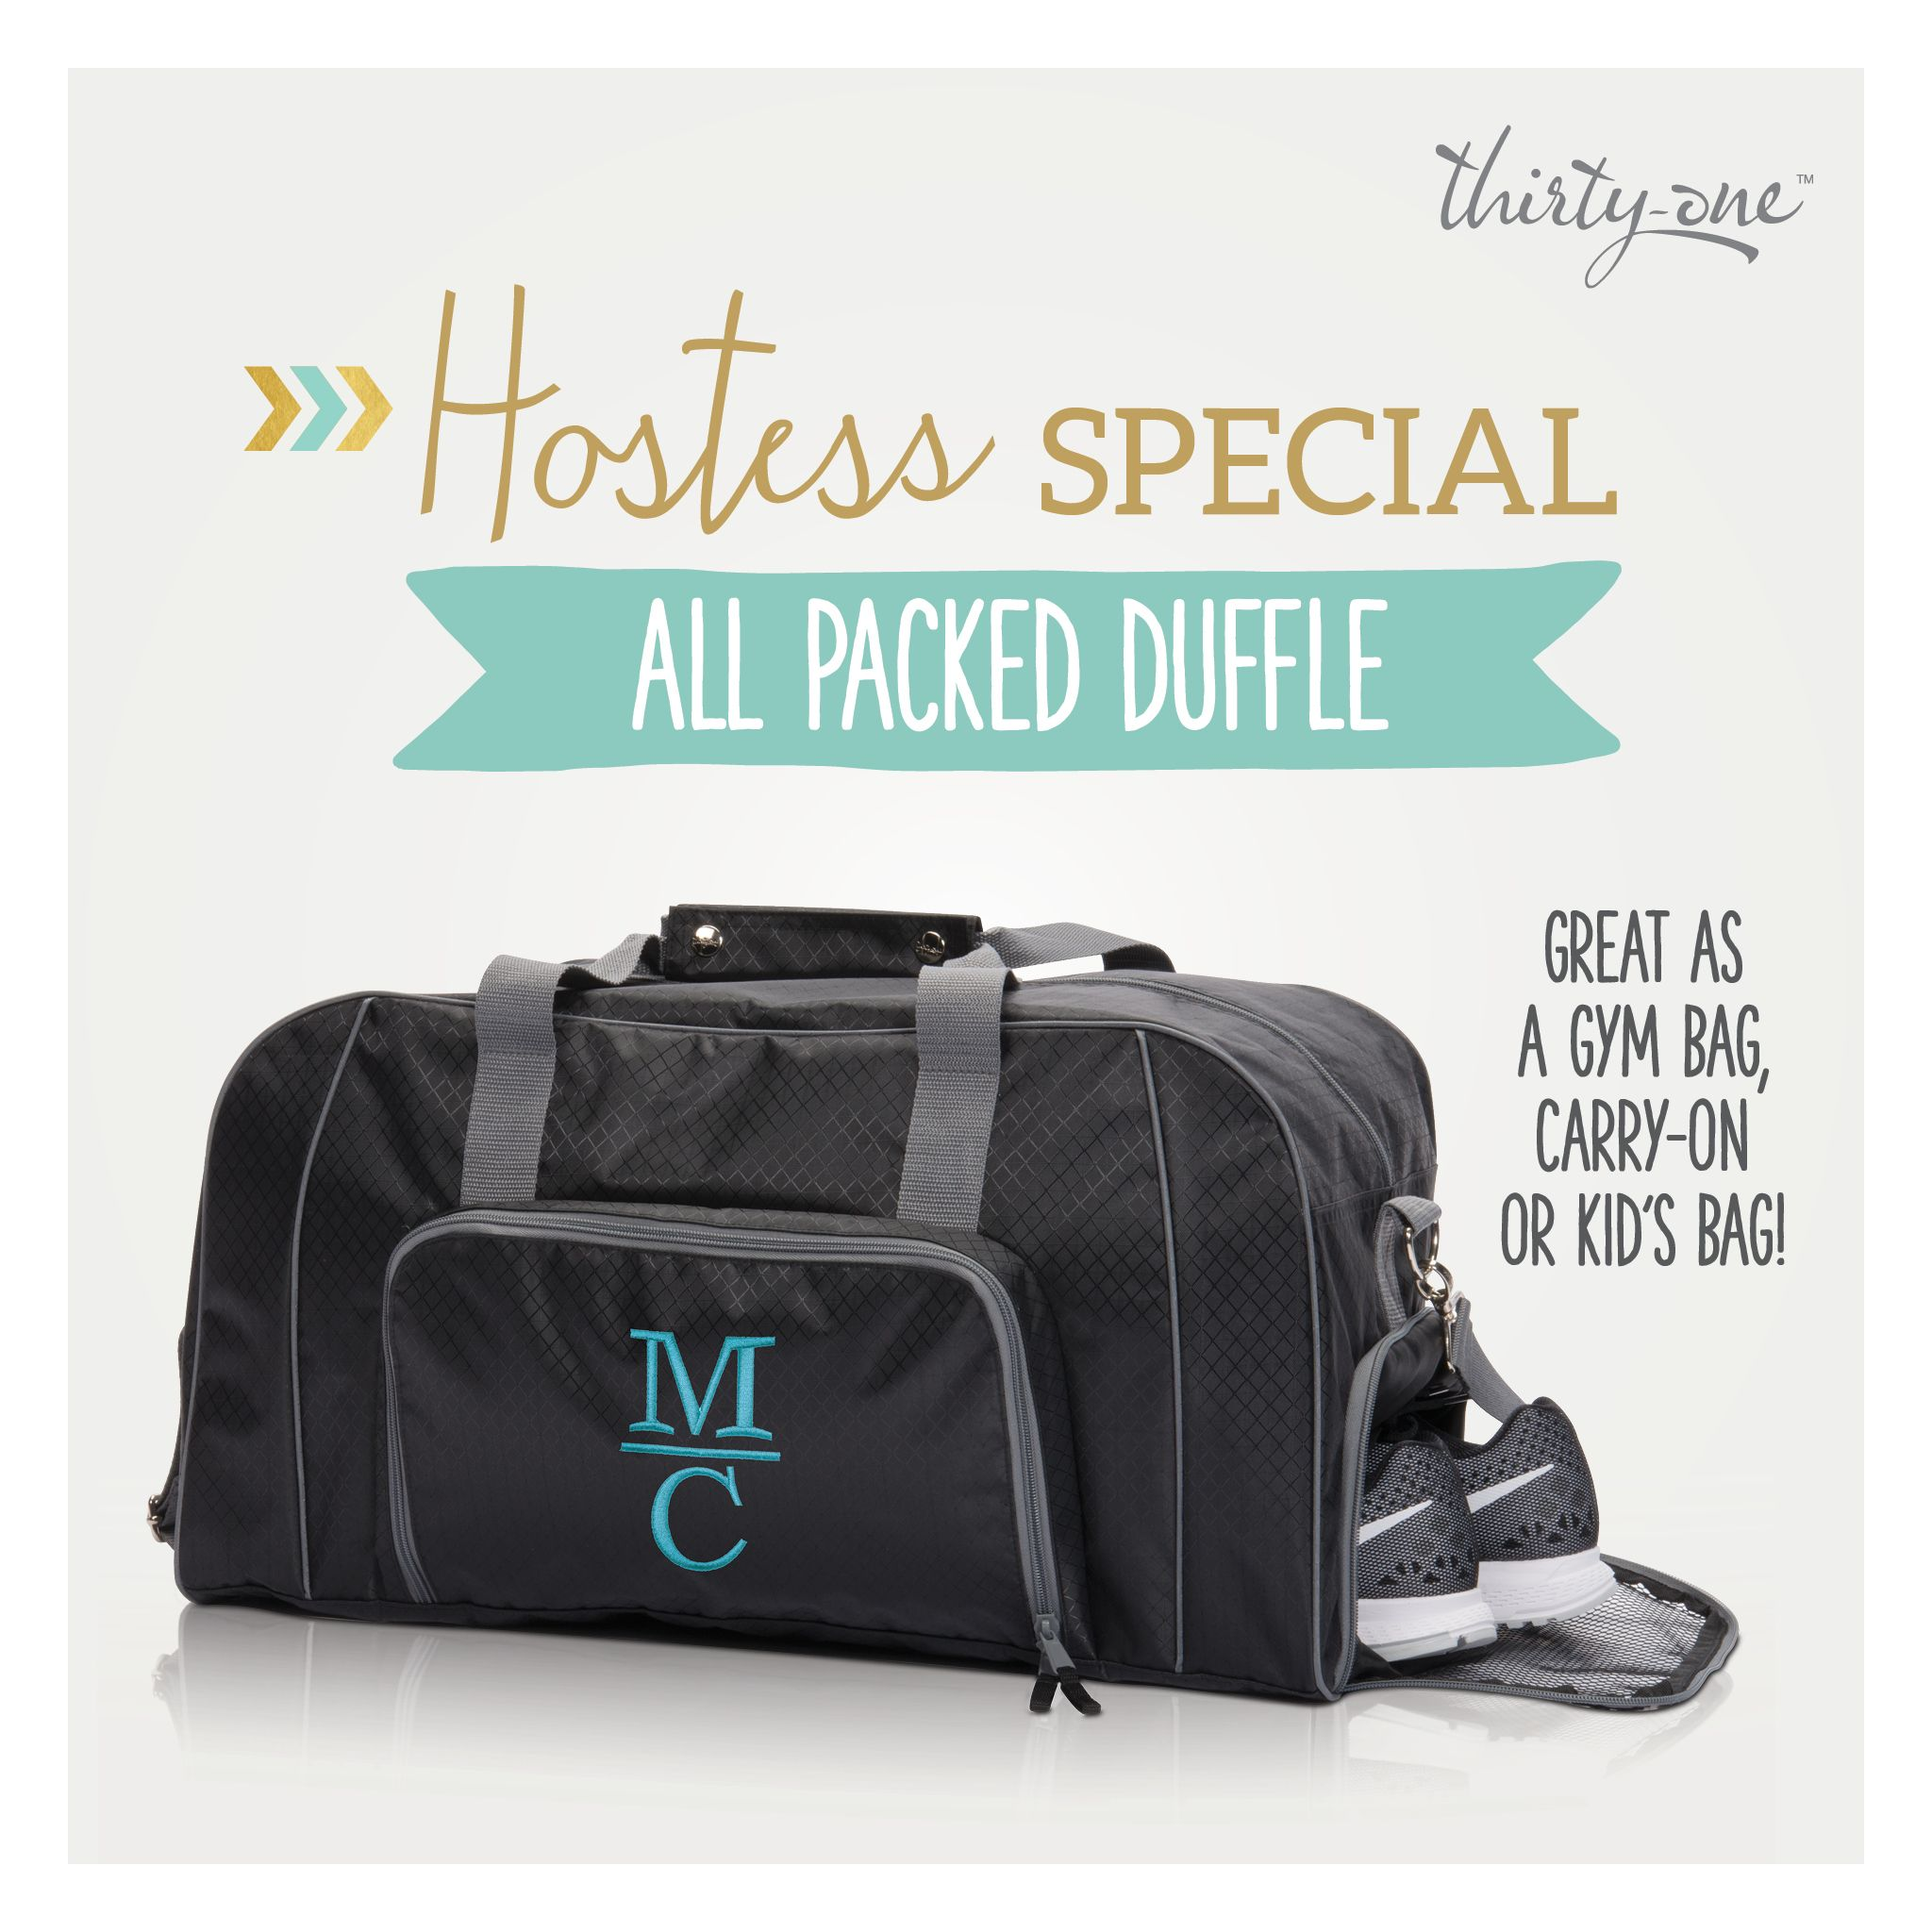 Thirty one november customer special 2014 - Thirty One S October Hostess Special All Packed Duffle